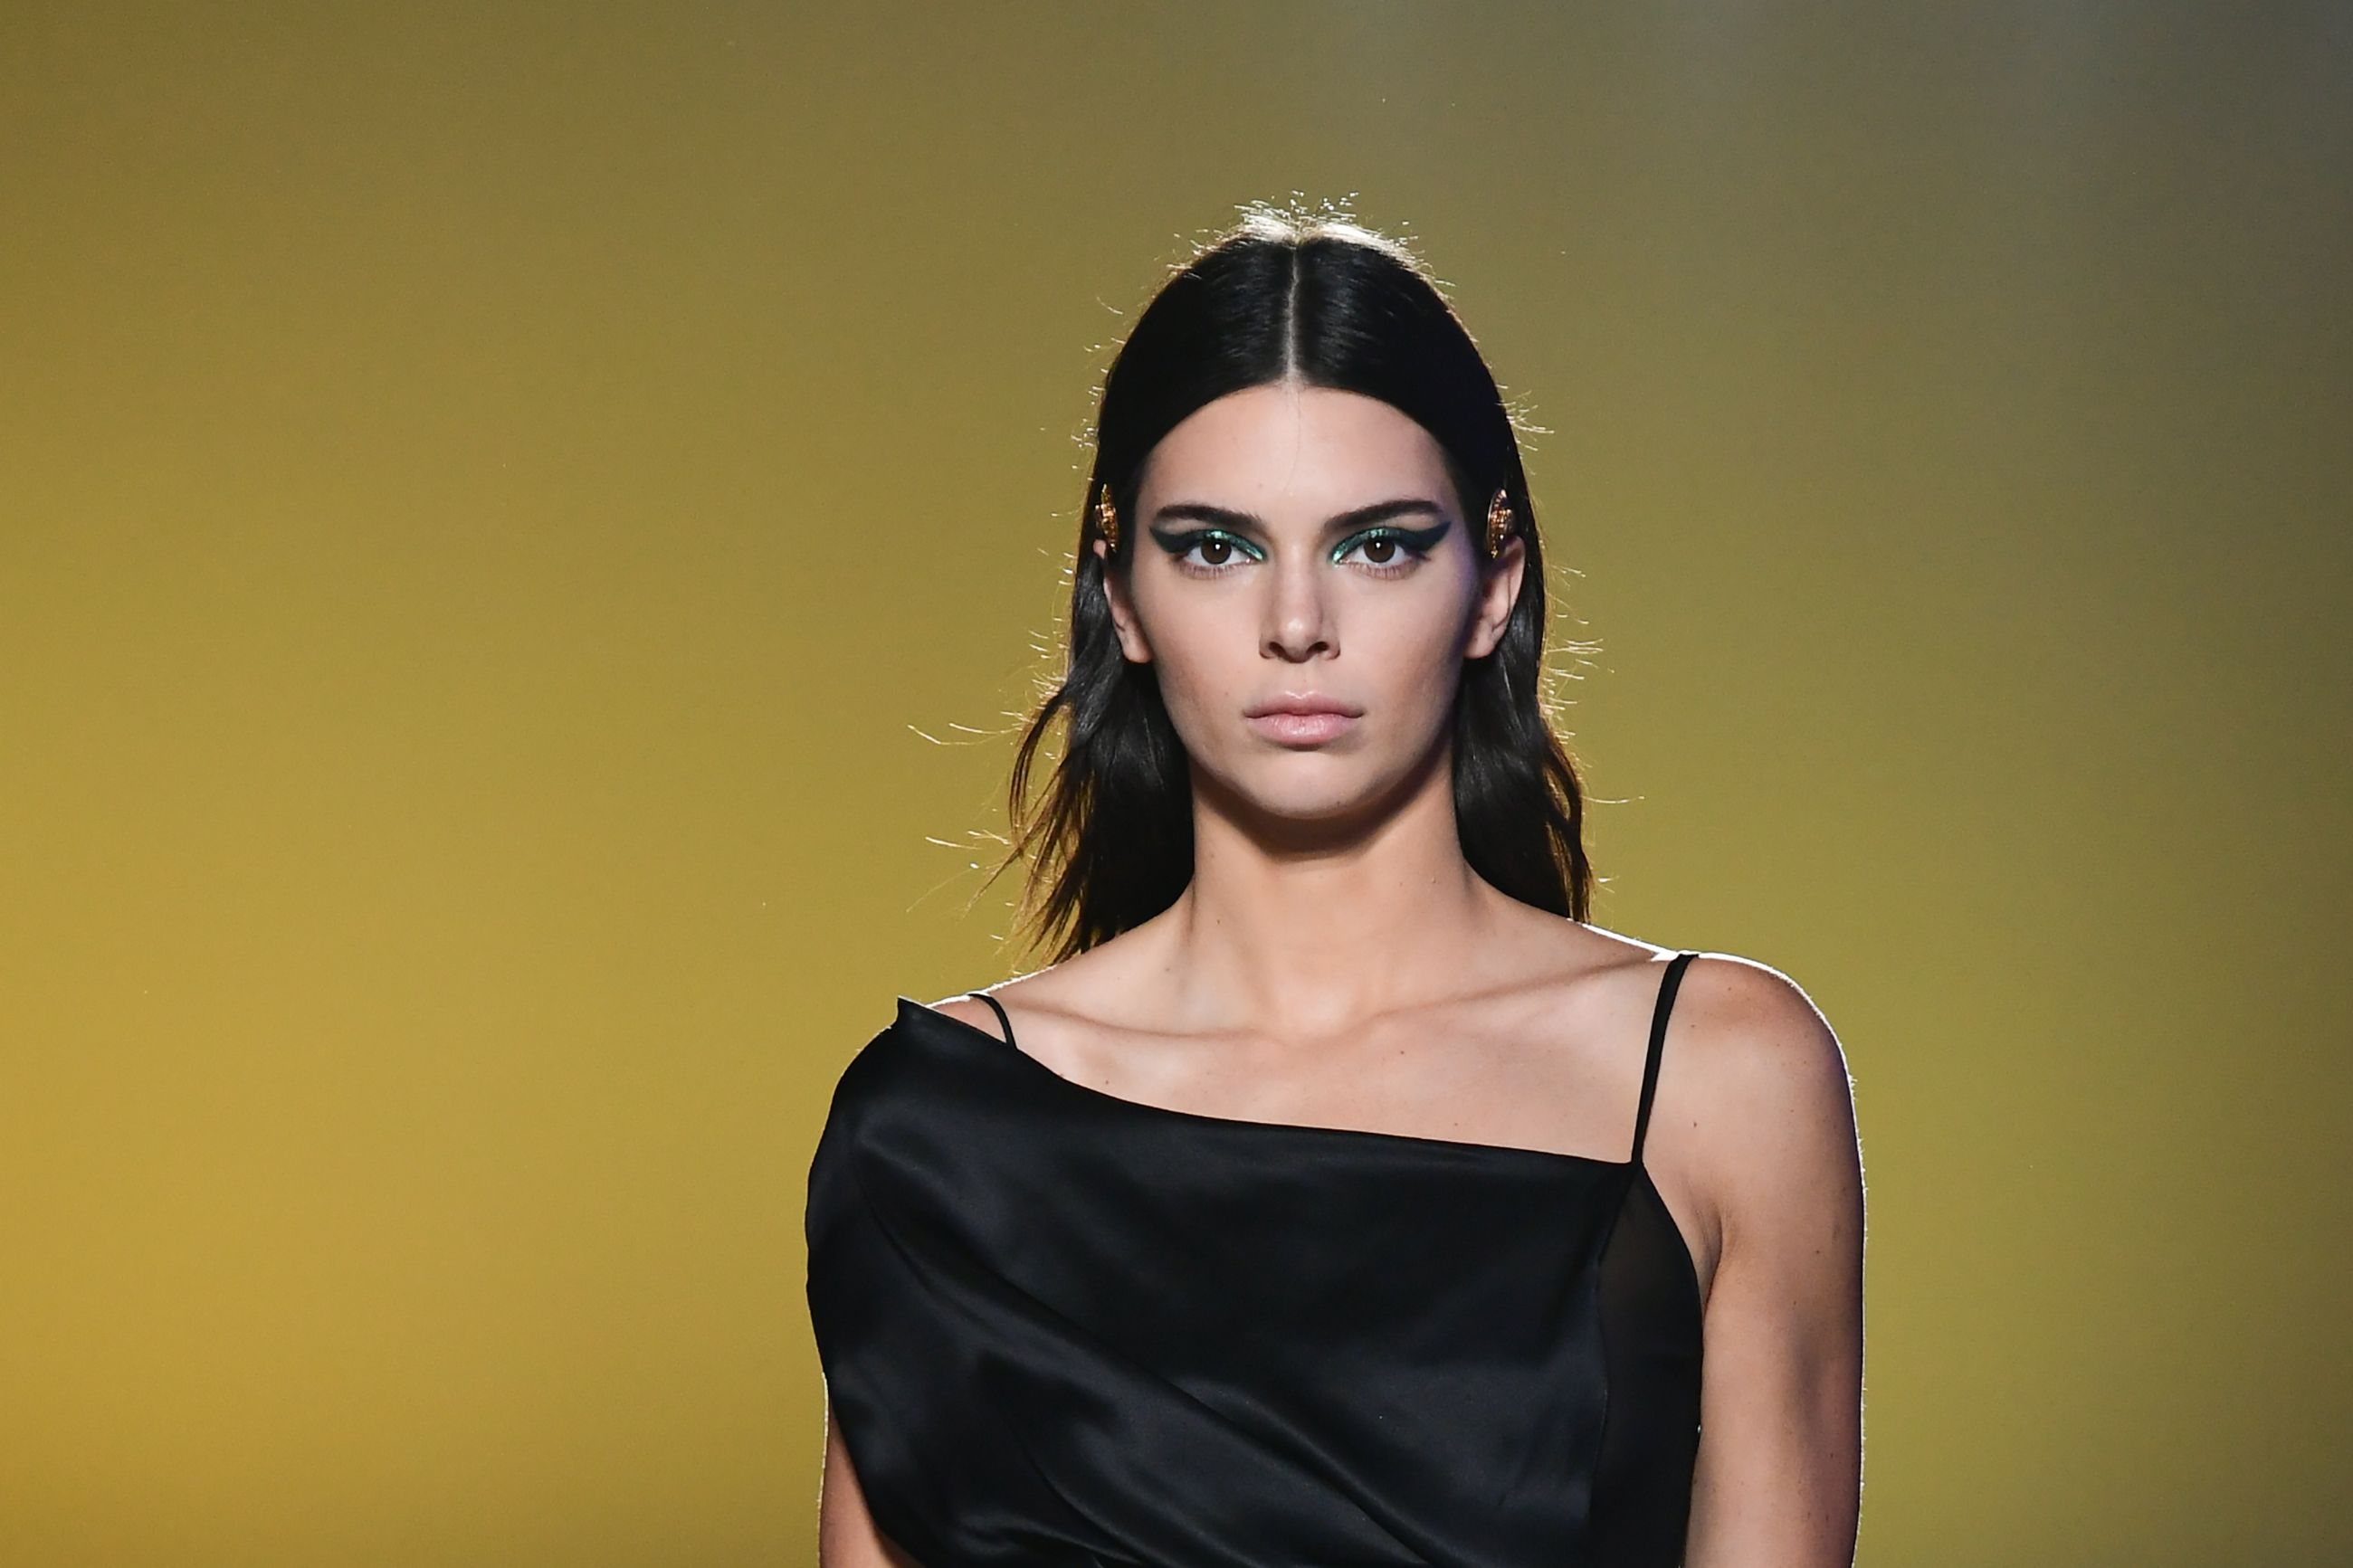 Kendall Jenner is the most-followed model on social media in